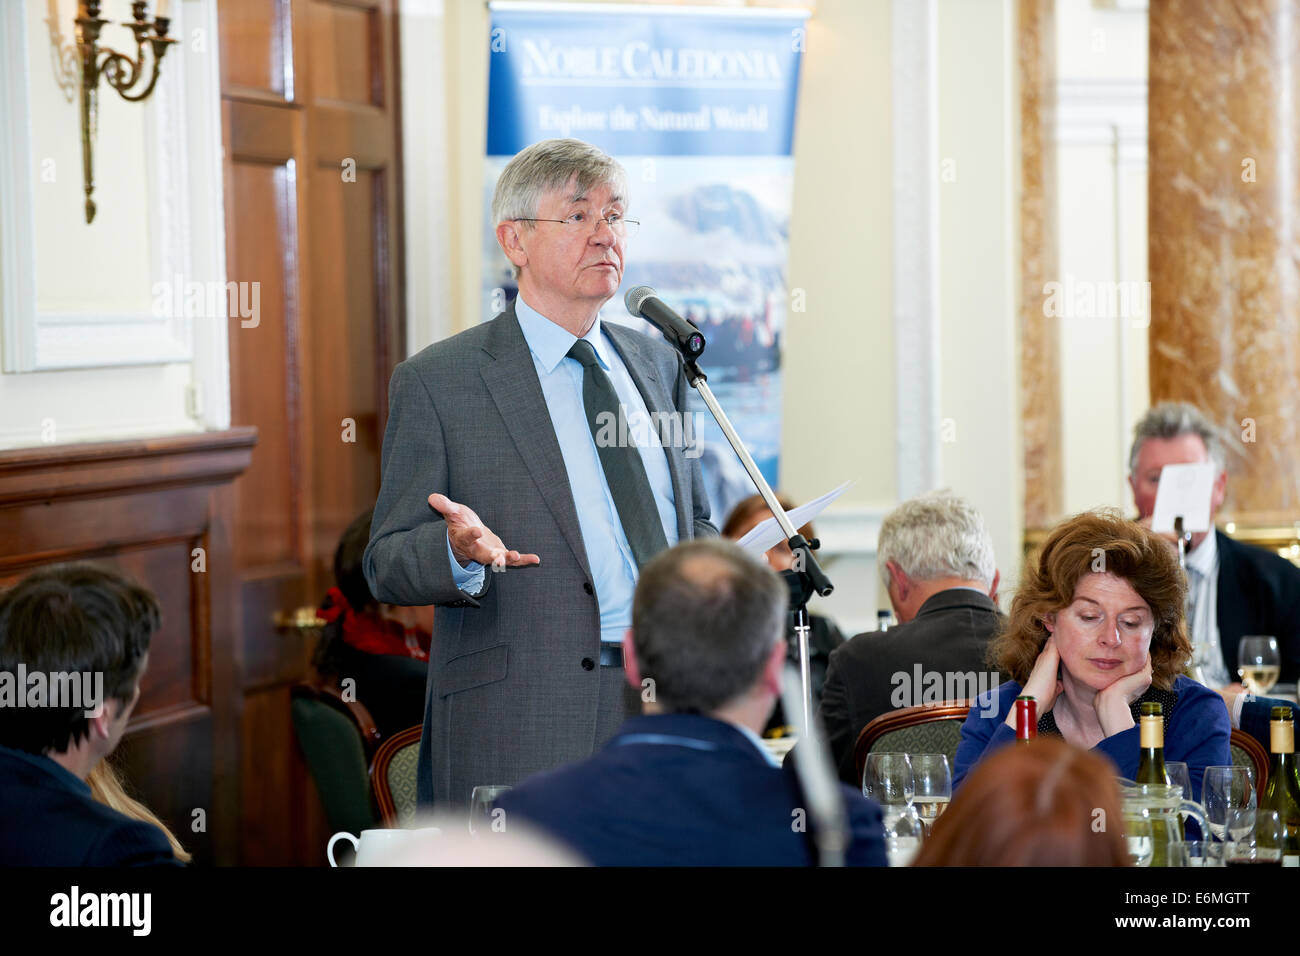 Piers Paul Read at the Oldie Literary Lunch  18/09/12 - Stock Image